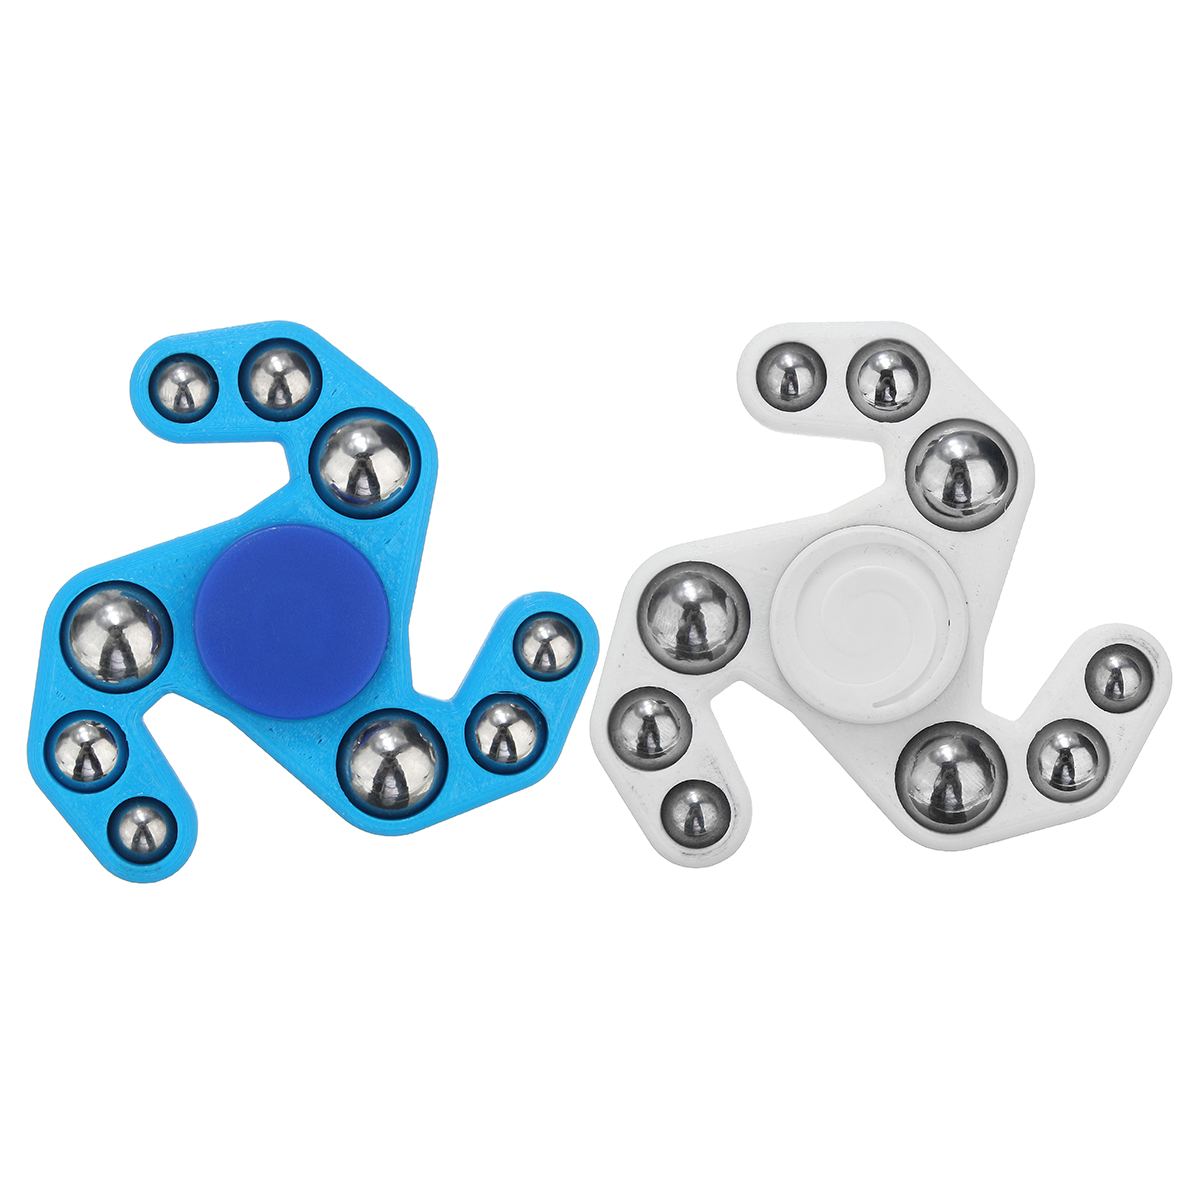 Plastic Hand Spinner Finger Spinner With Steel Ball Focus Game Novelty Gift Decompression